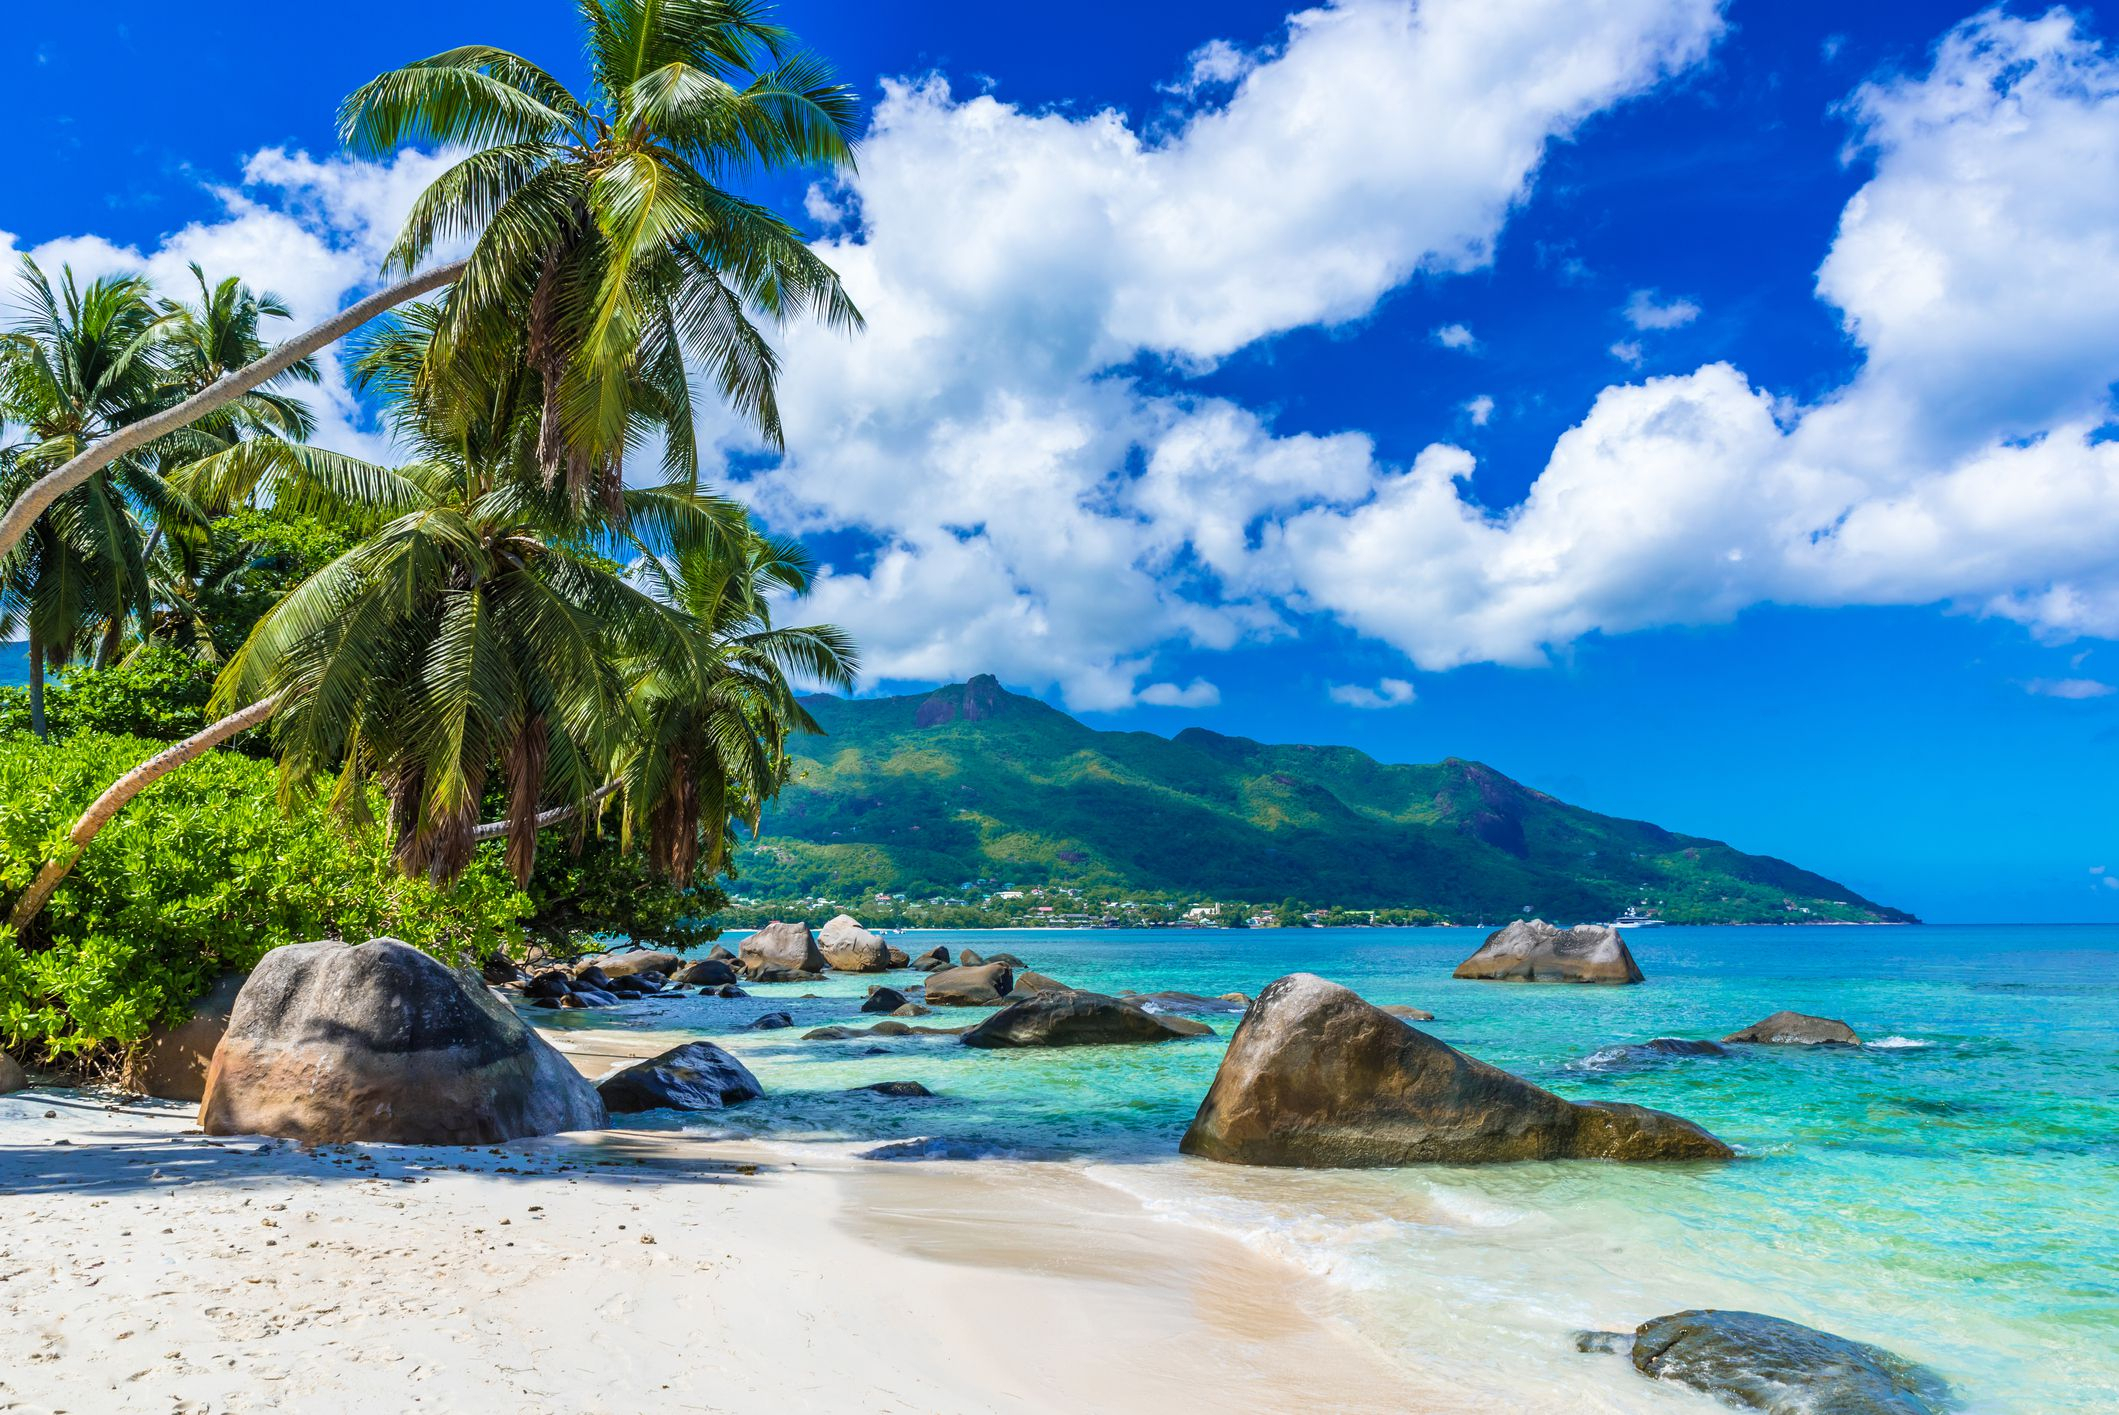 The Best Time To Visit The Seychelles Islands